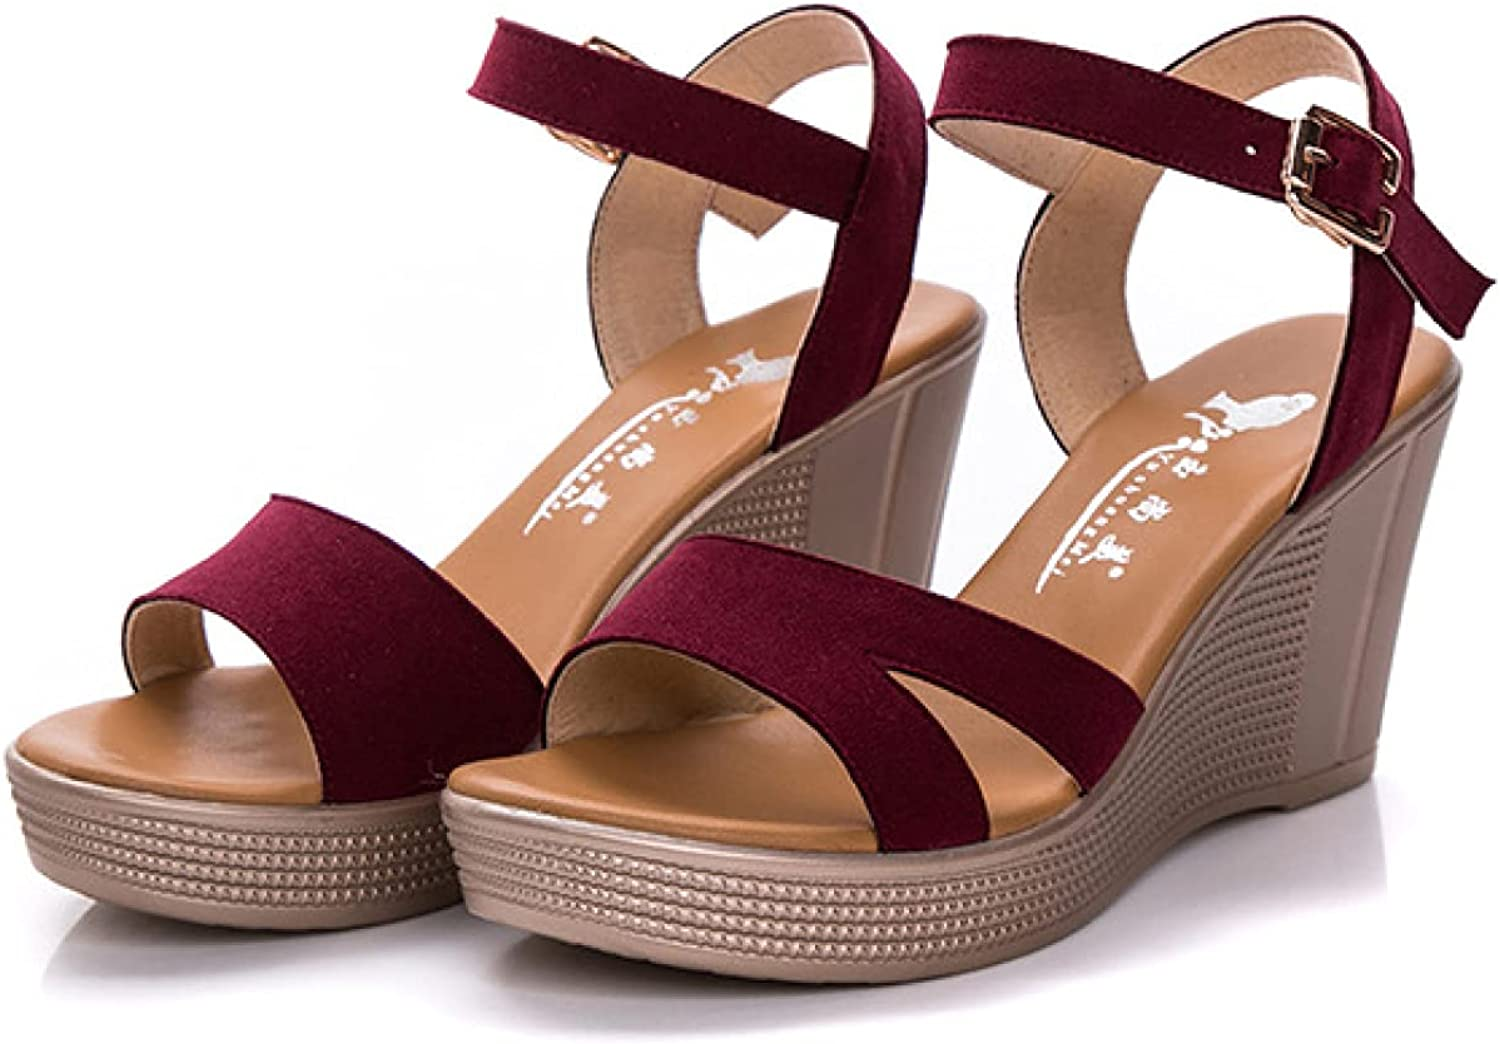 Women's Suede Vamp Wedge Sandal Open Toe Ankle Strappy Heeled Summer Fashion Anti Slip Outdoor Shoes